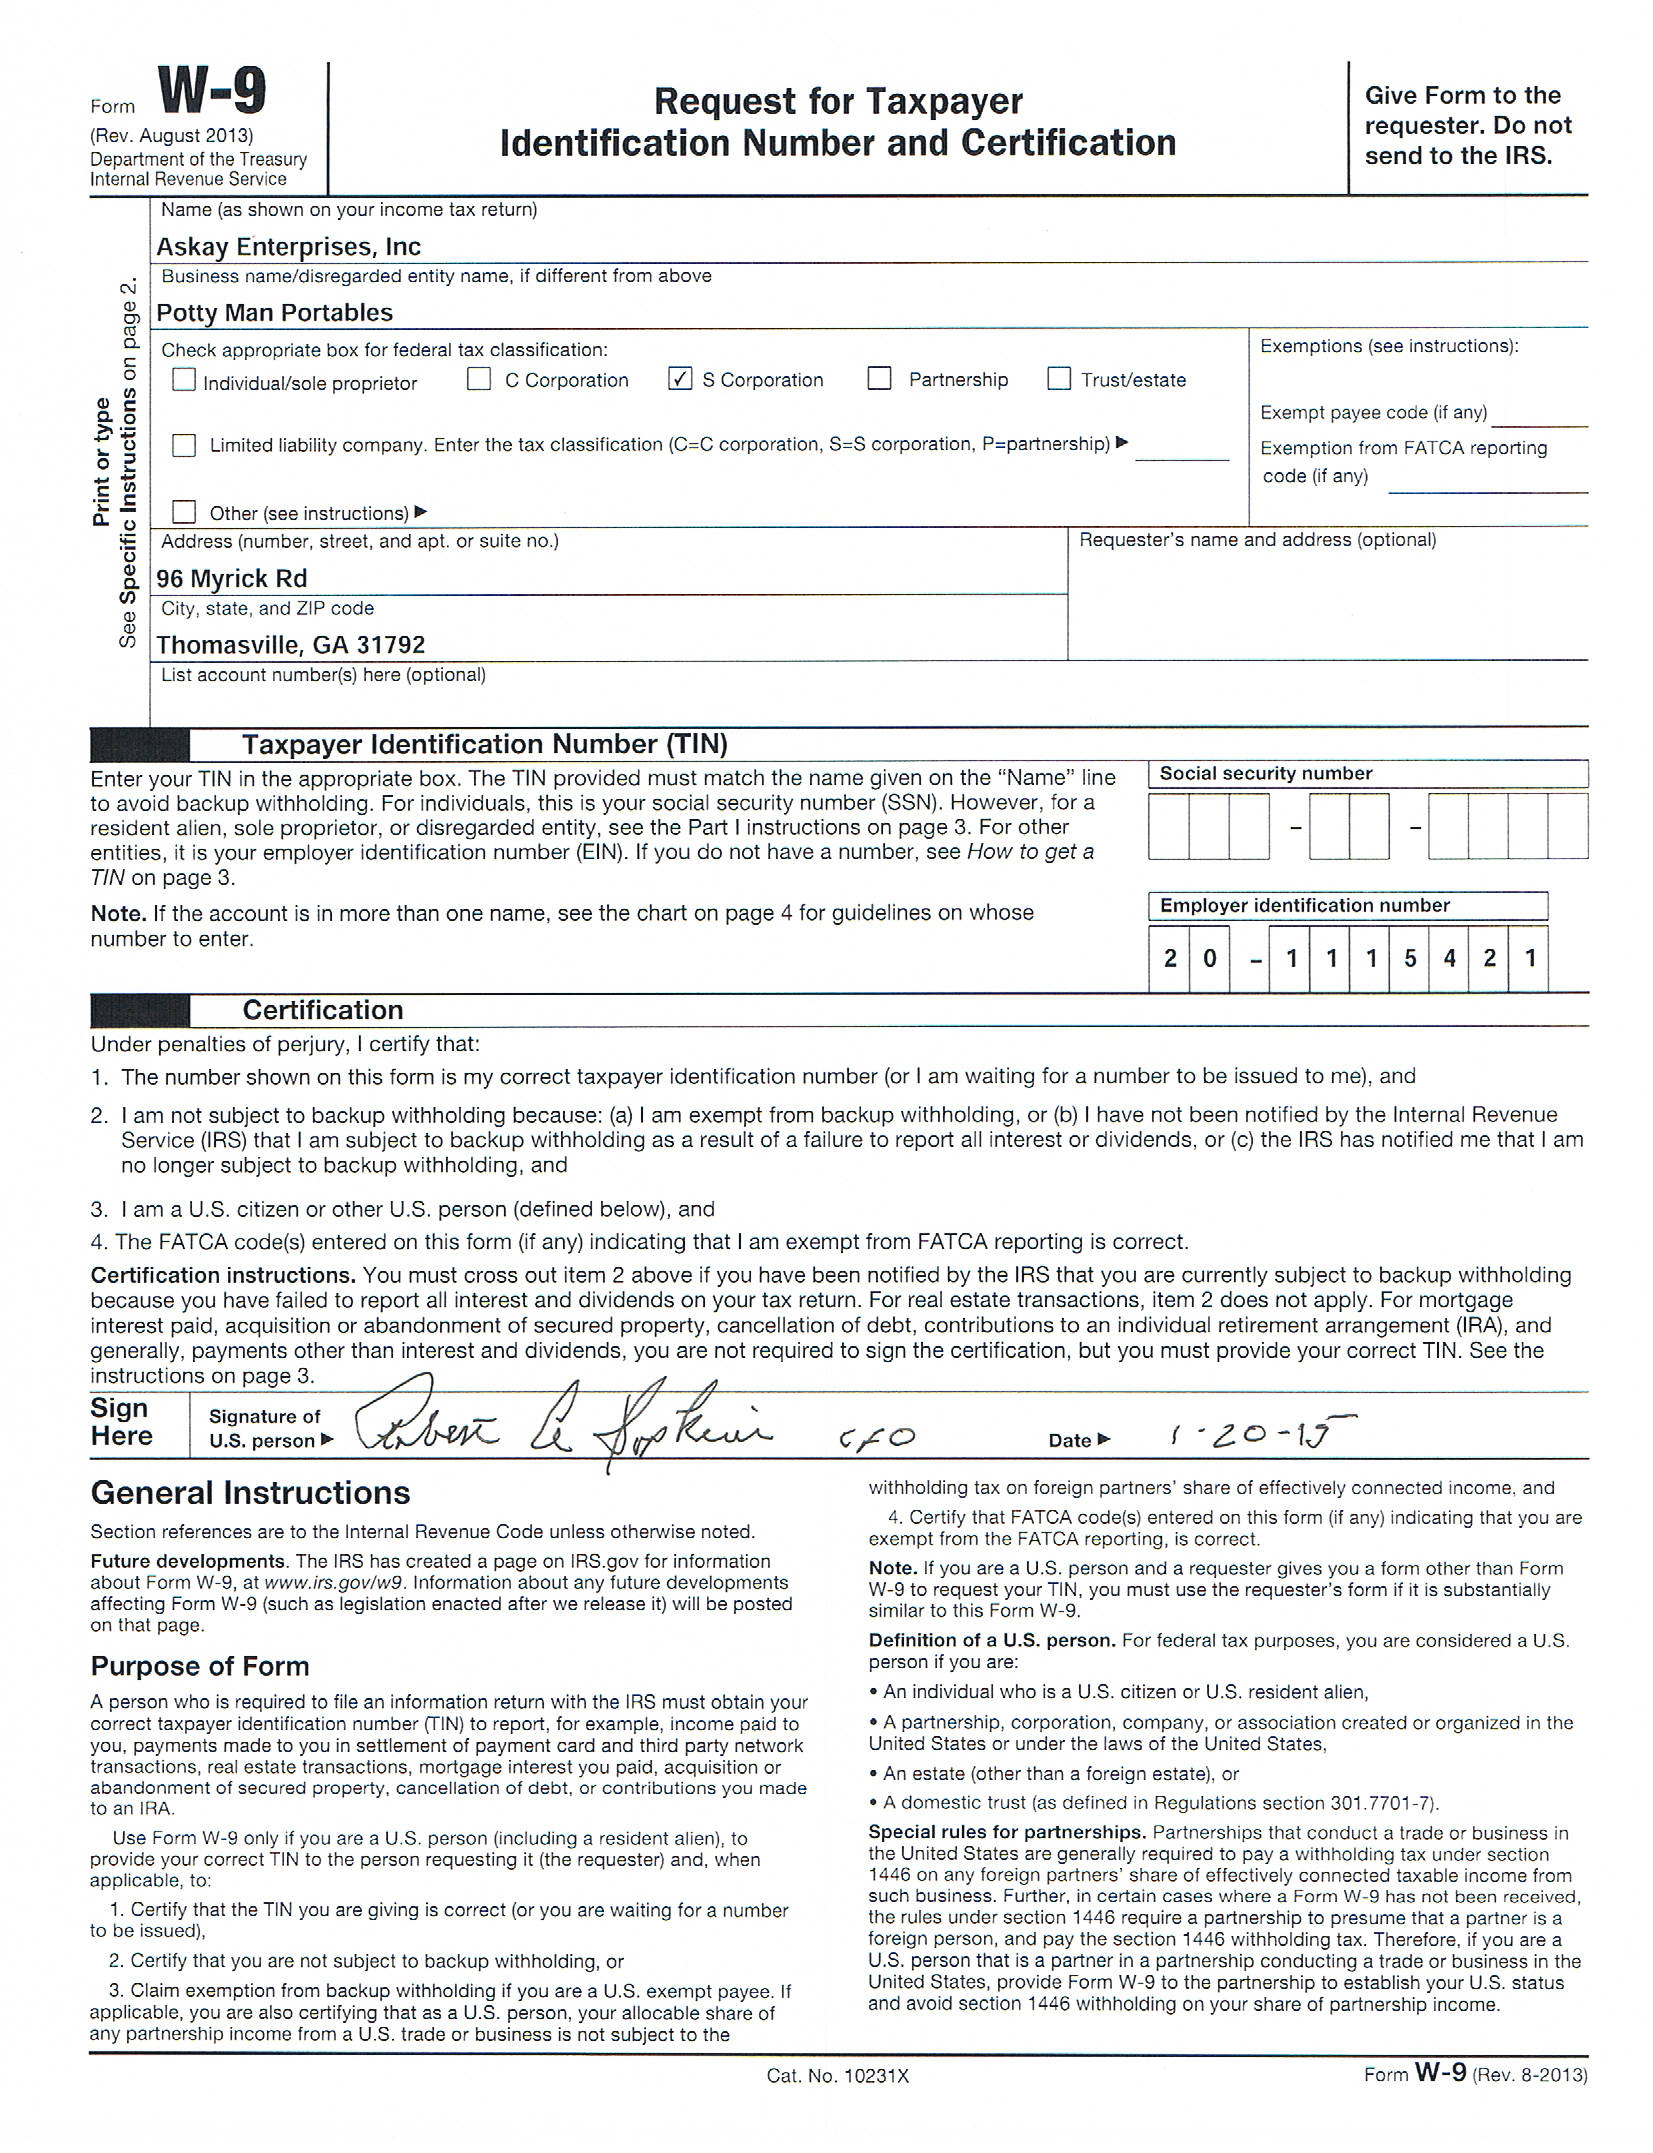 W 9 Tax Form Irs Blank For 2016 Design Templates 2014 Choice